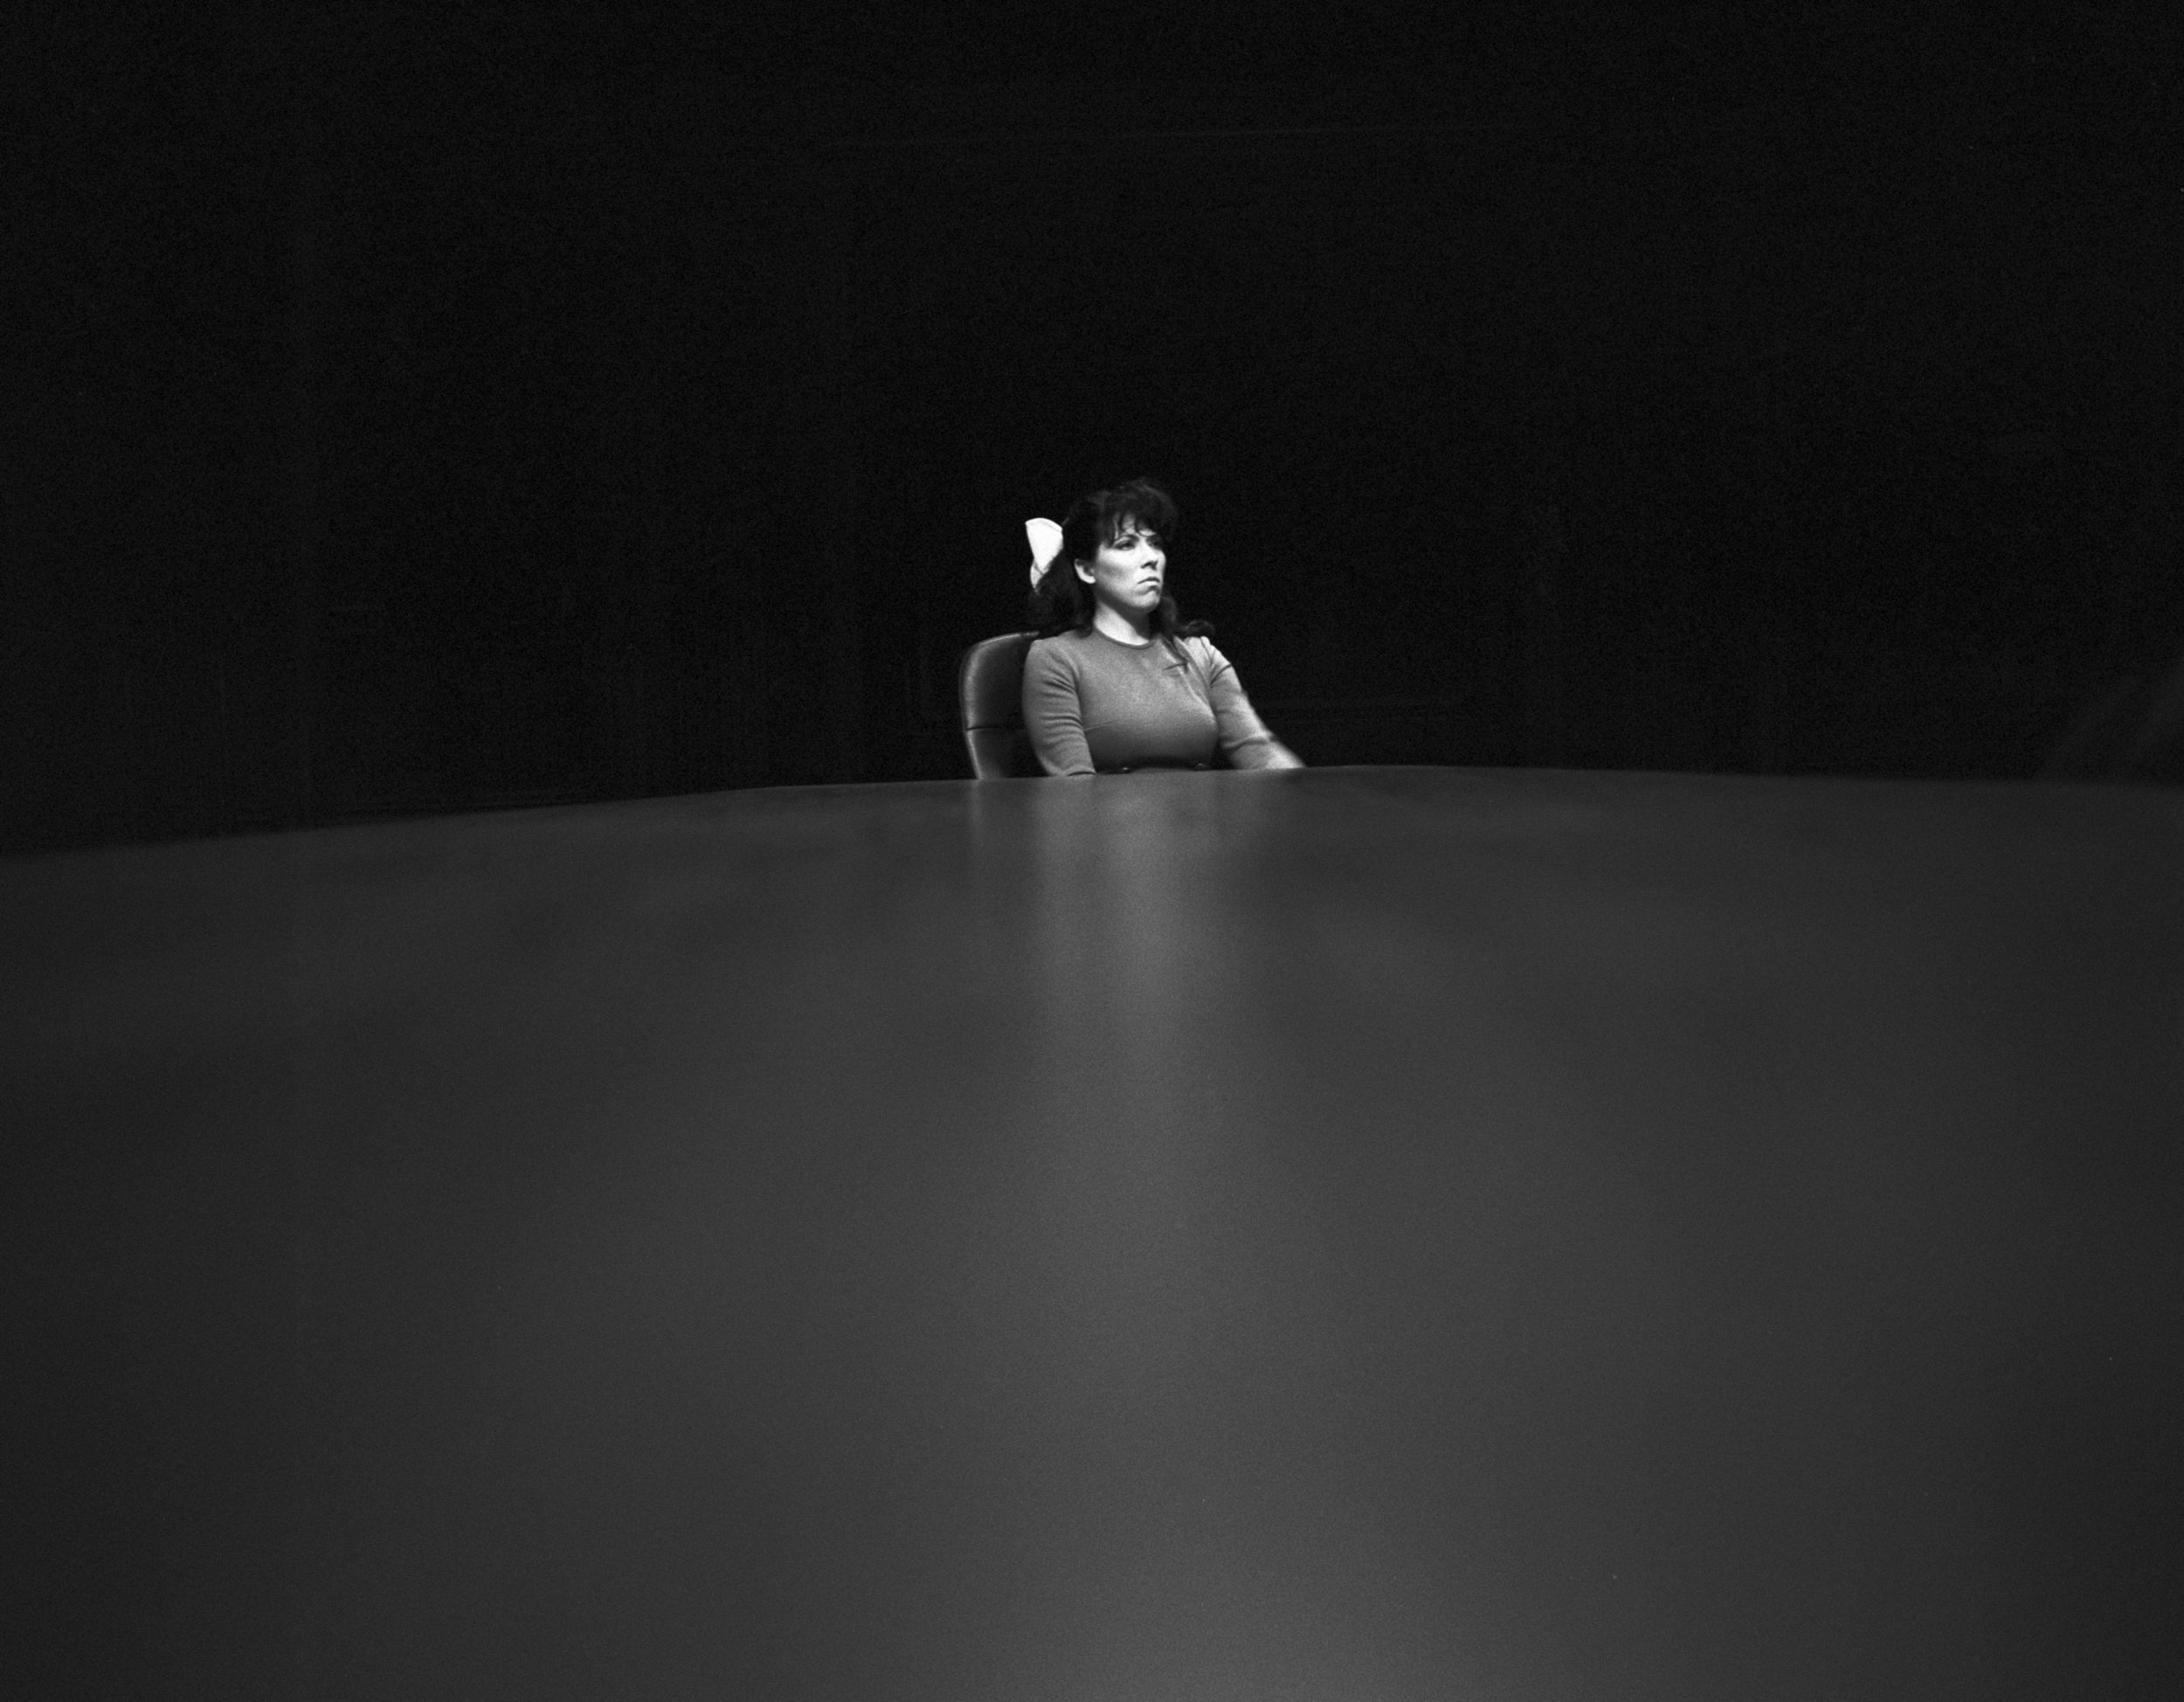 """Catherine Sullivan, Virtuous woman,  2005, black and white photography, 17 x 17"""" b/w, 43,18 x 43,18 cm, edition 4/6"""